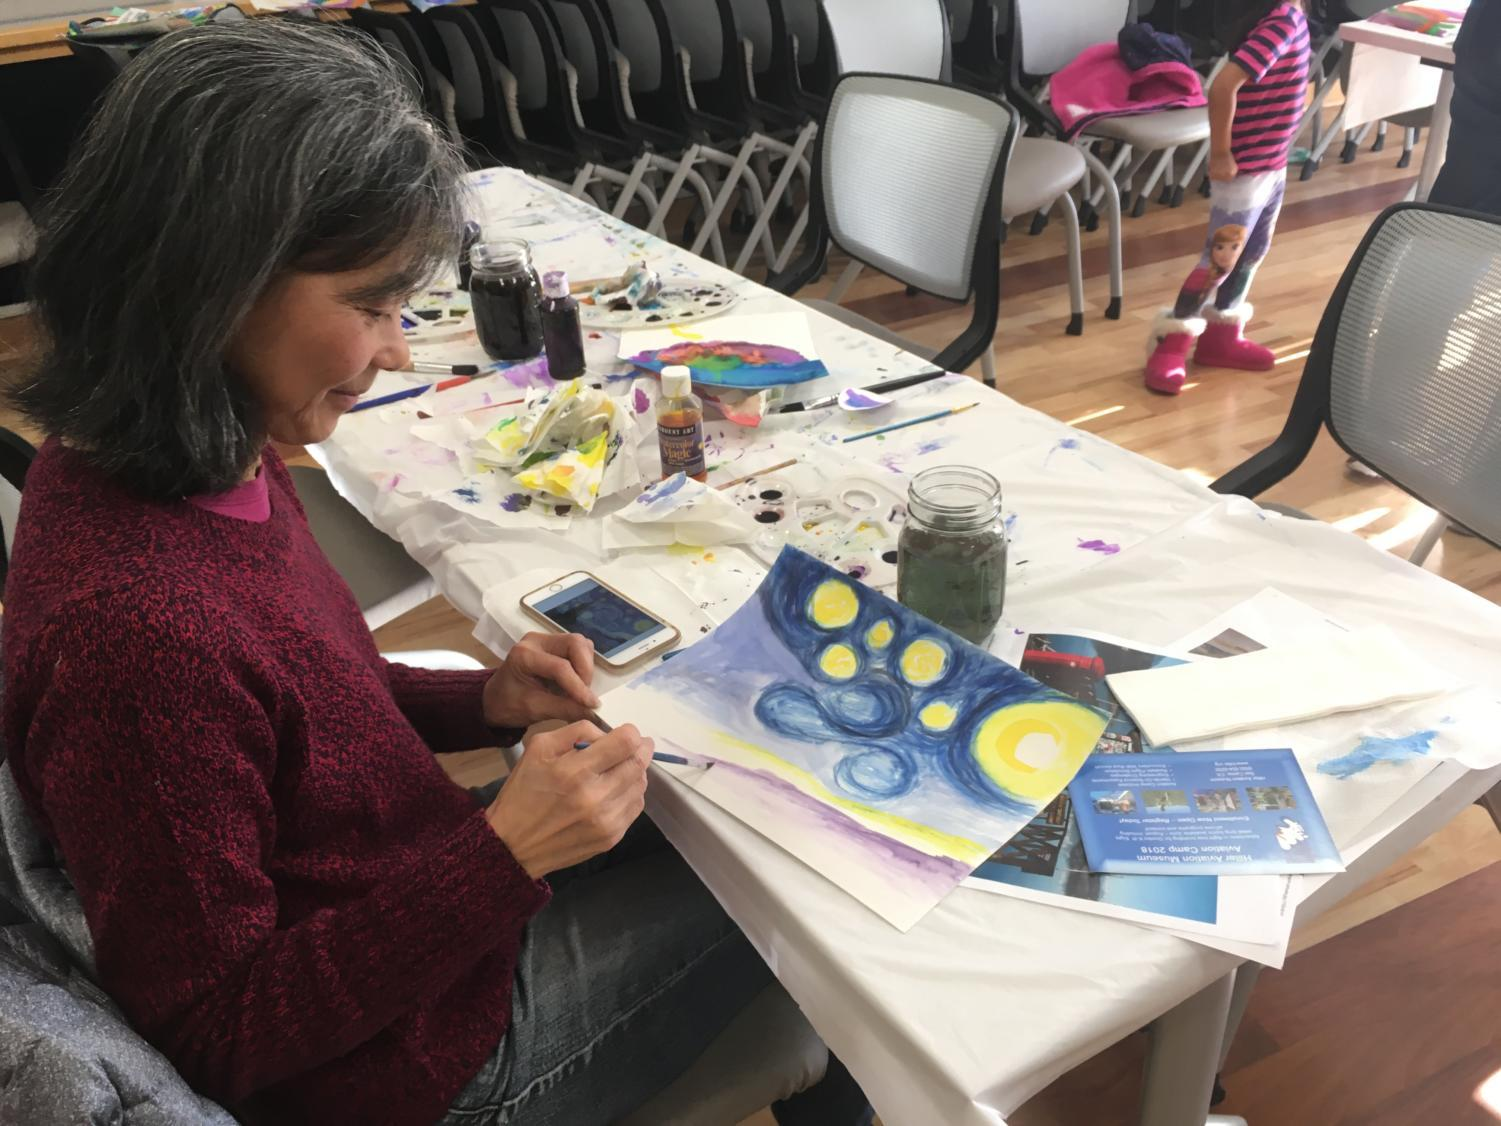 Watercolor+painting+was+one+of+the+many+activities+offered+at+the+S.T.E.AM.+Fair.